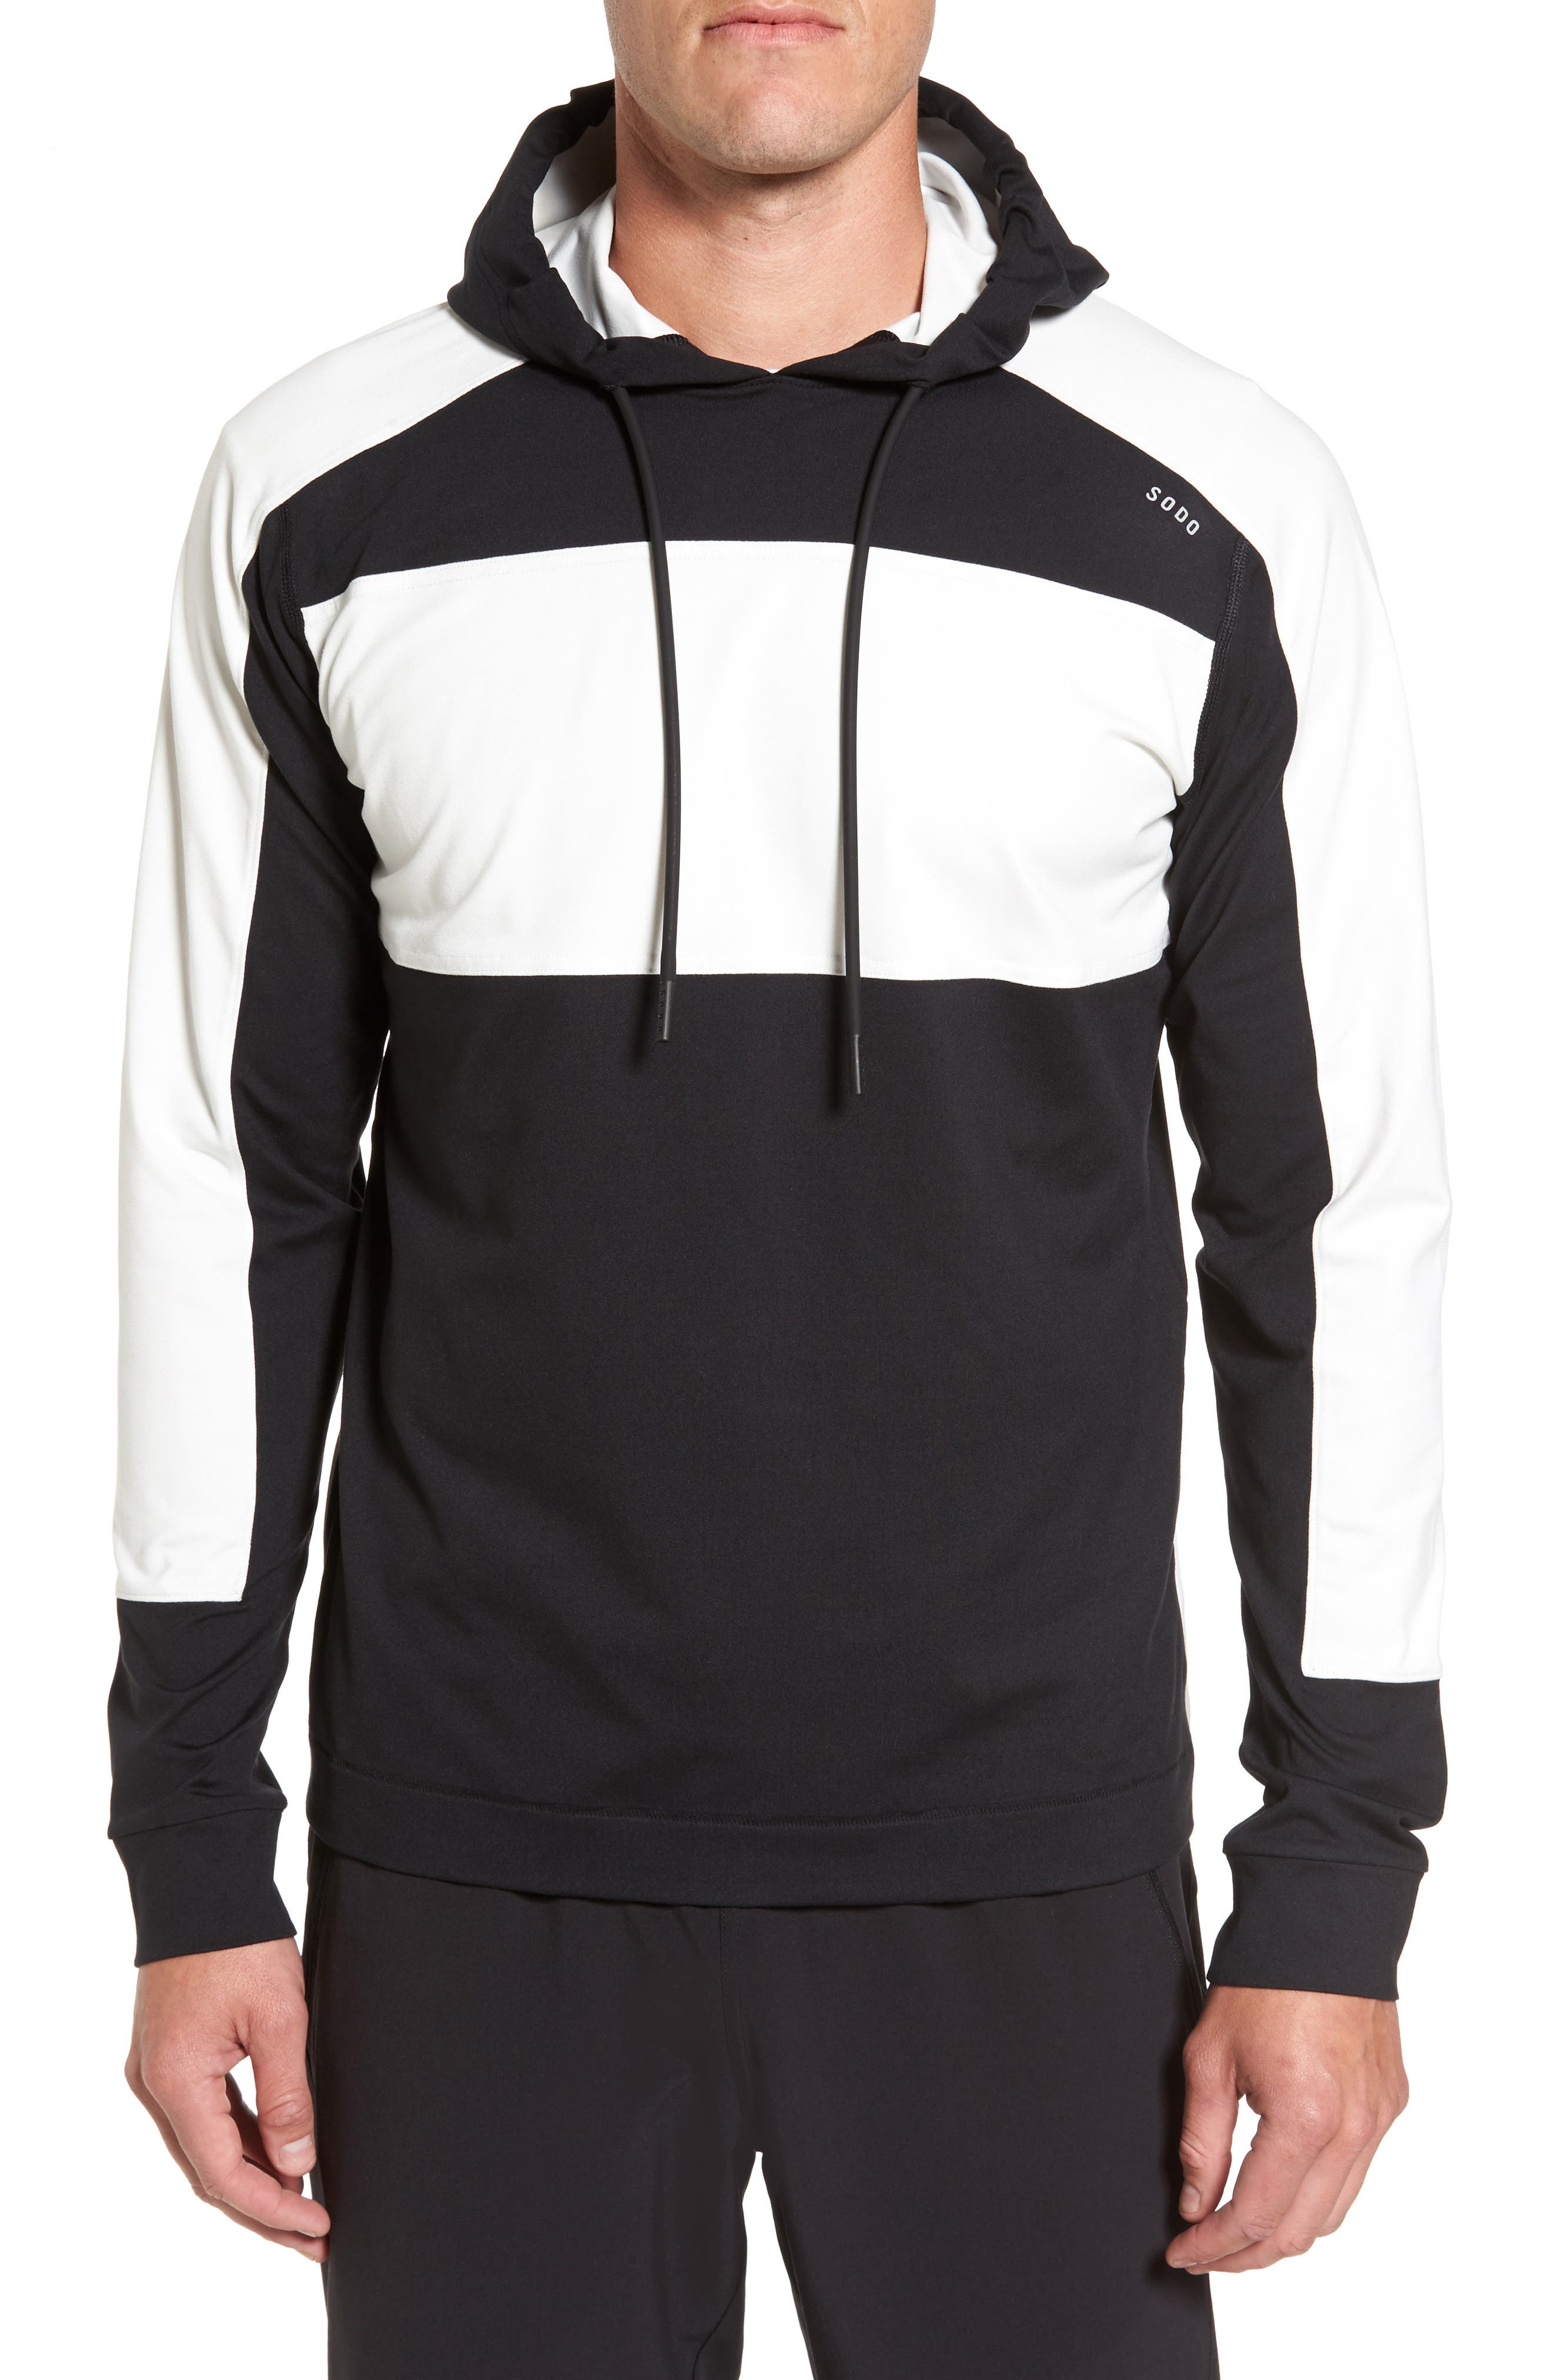 Colorblock Stretch Hoodie,                         Main,                         color, Black/ White